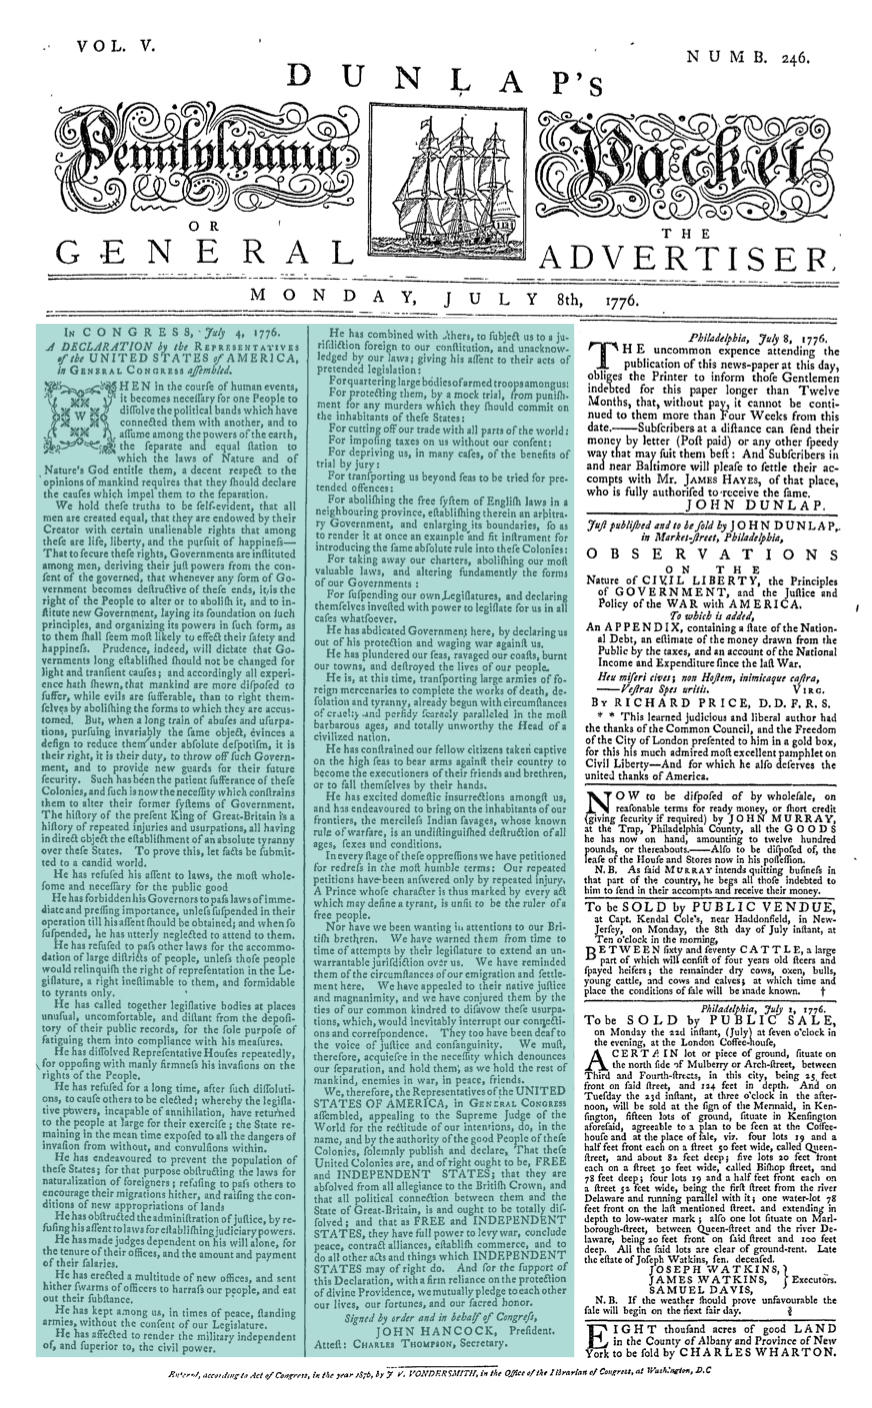 Front Page of Dunlap's Pennsylvania Packet, July 8, 1776